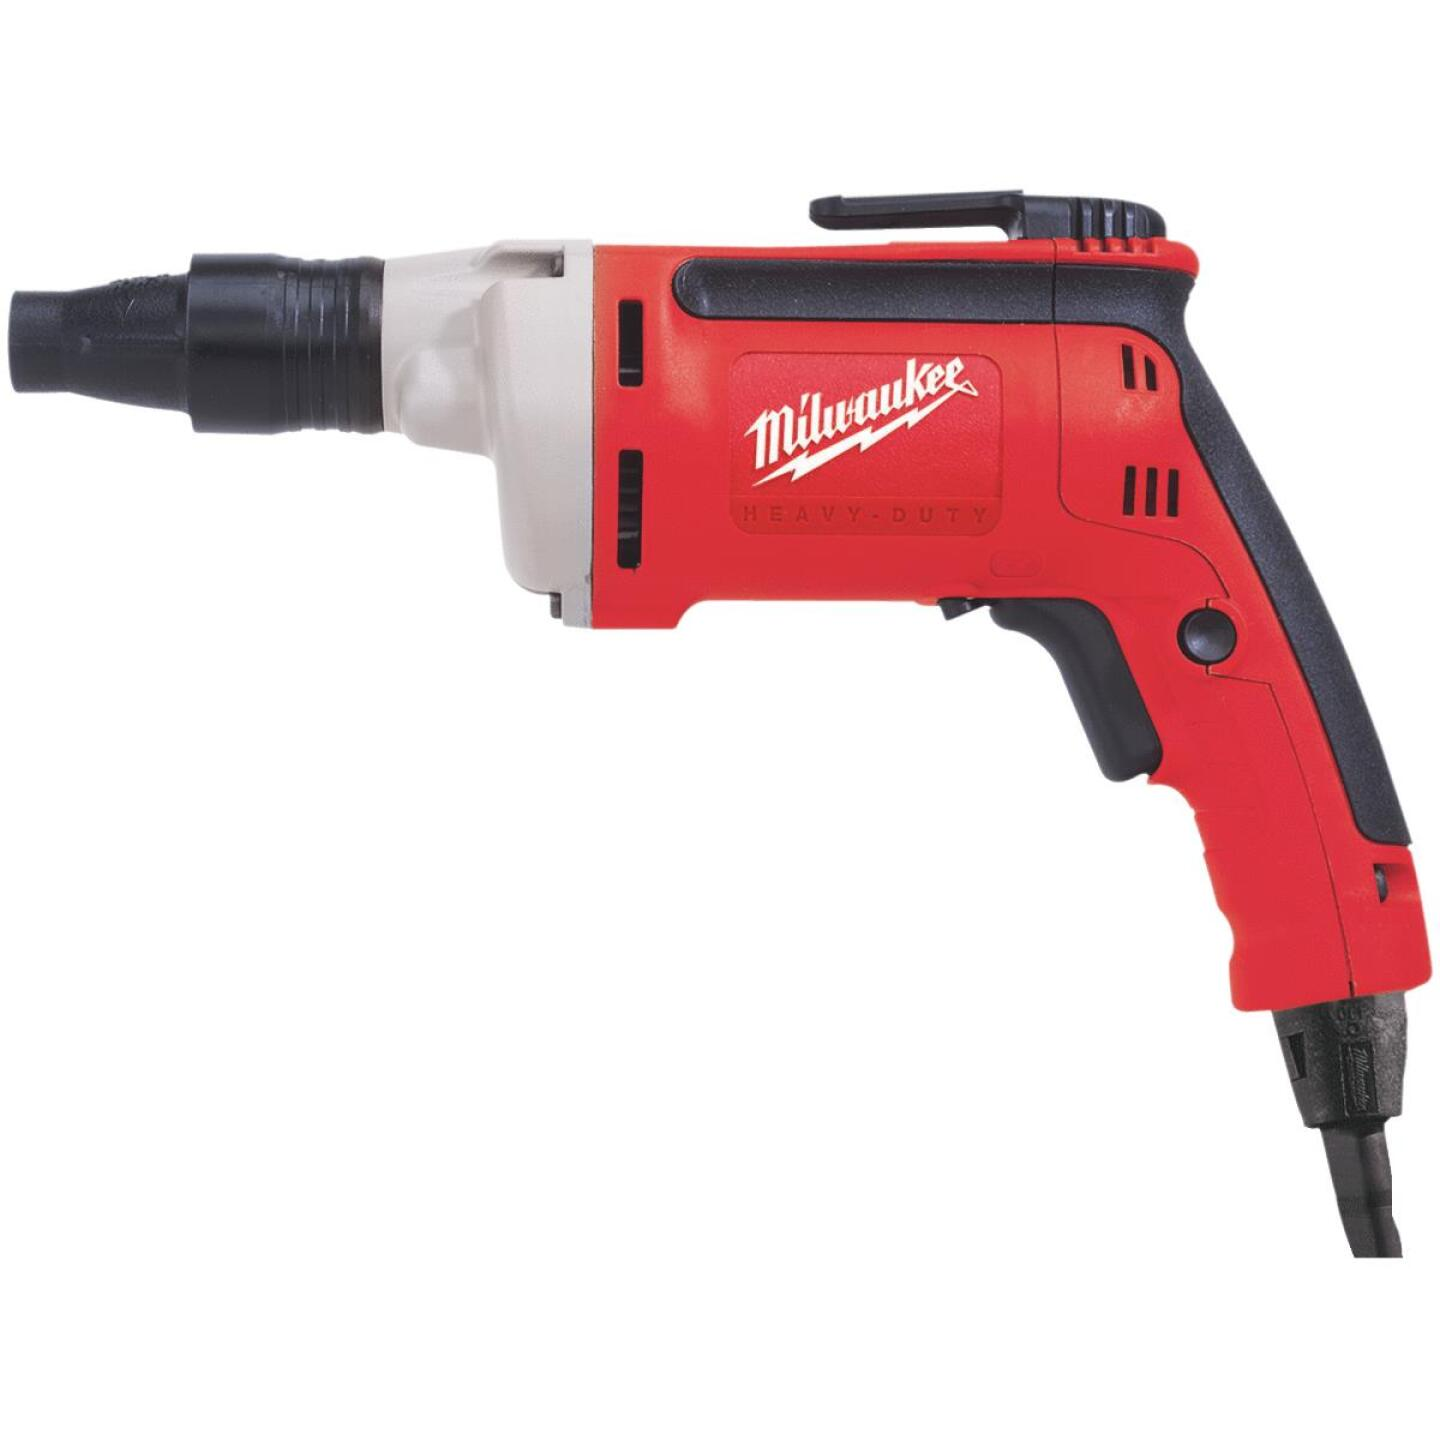 Milwaukee 5A/2500 rpm Electric Screwgun Image 1